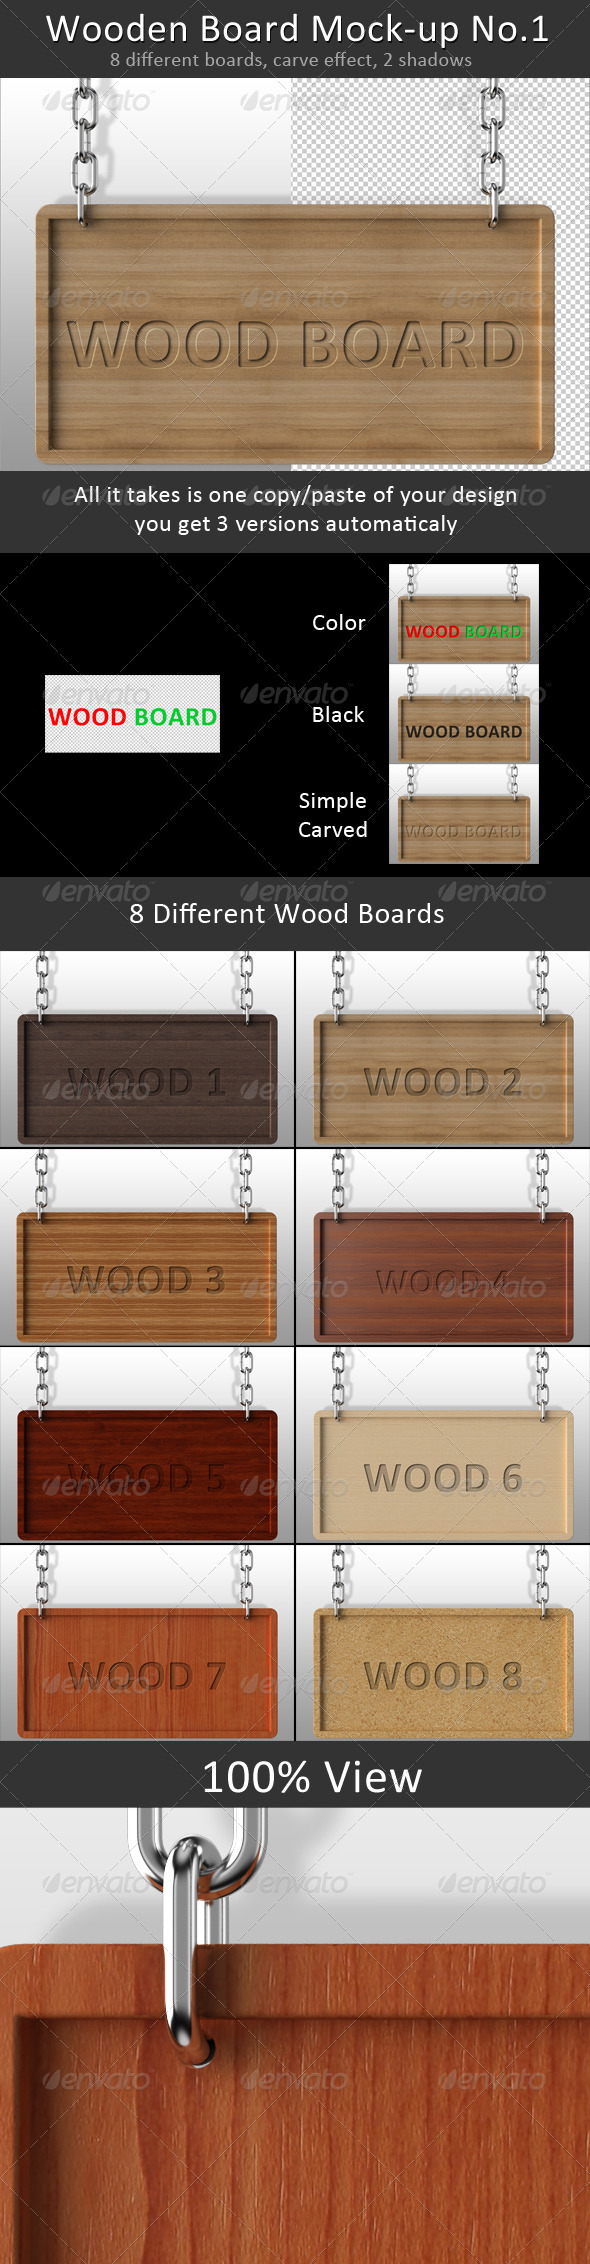 GraphicRiver Wooden Board Mock-up No.1 1120081